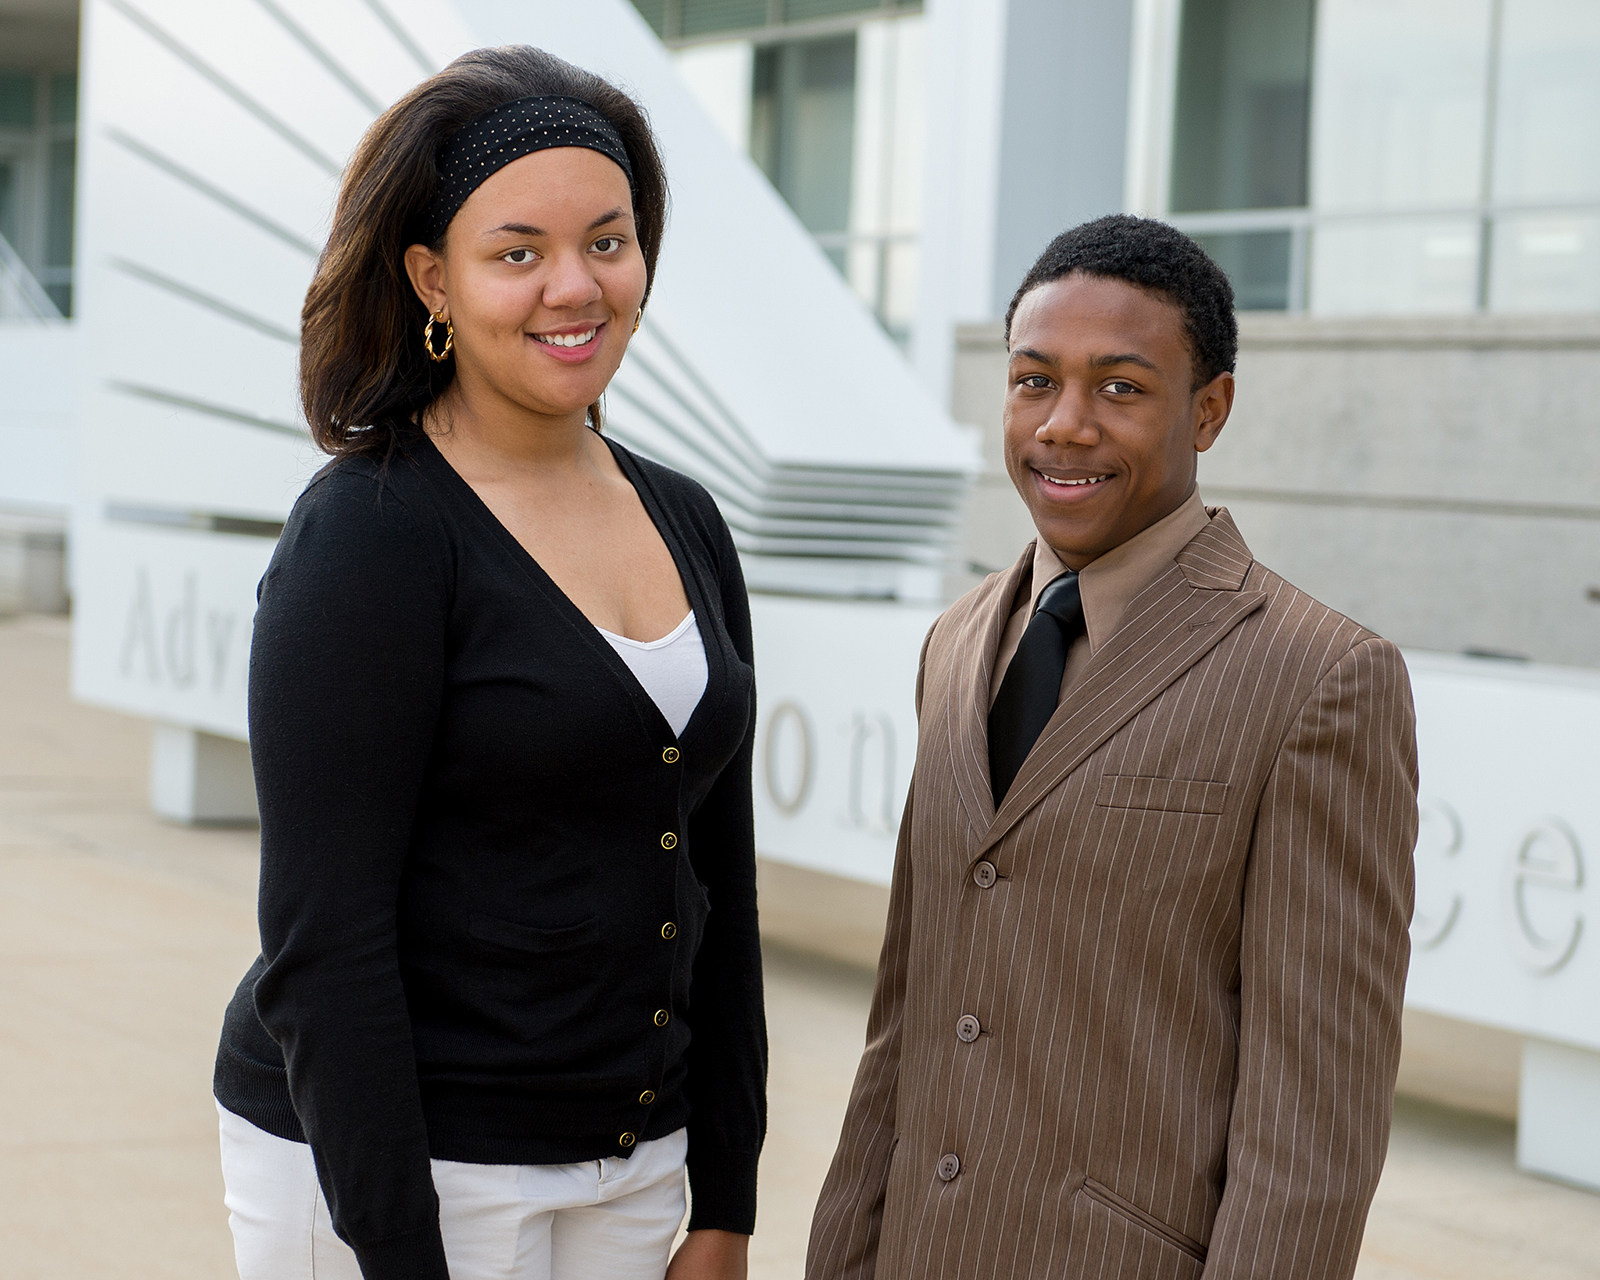 Shacara Samuels (left) and Sebastian Despiau (right) are recipients of Argonne's African American Black Club Academic Scholarship Award.